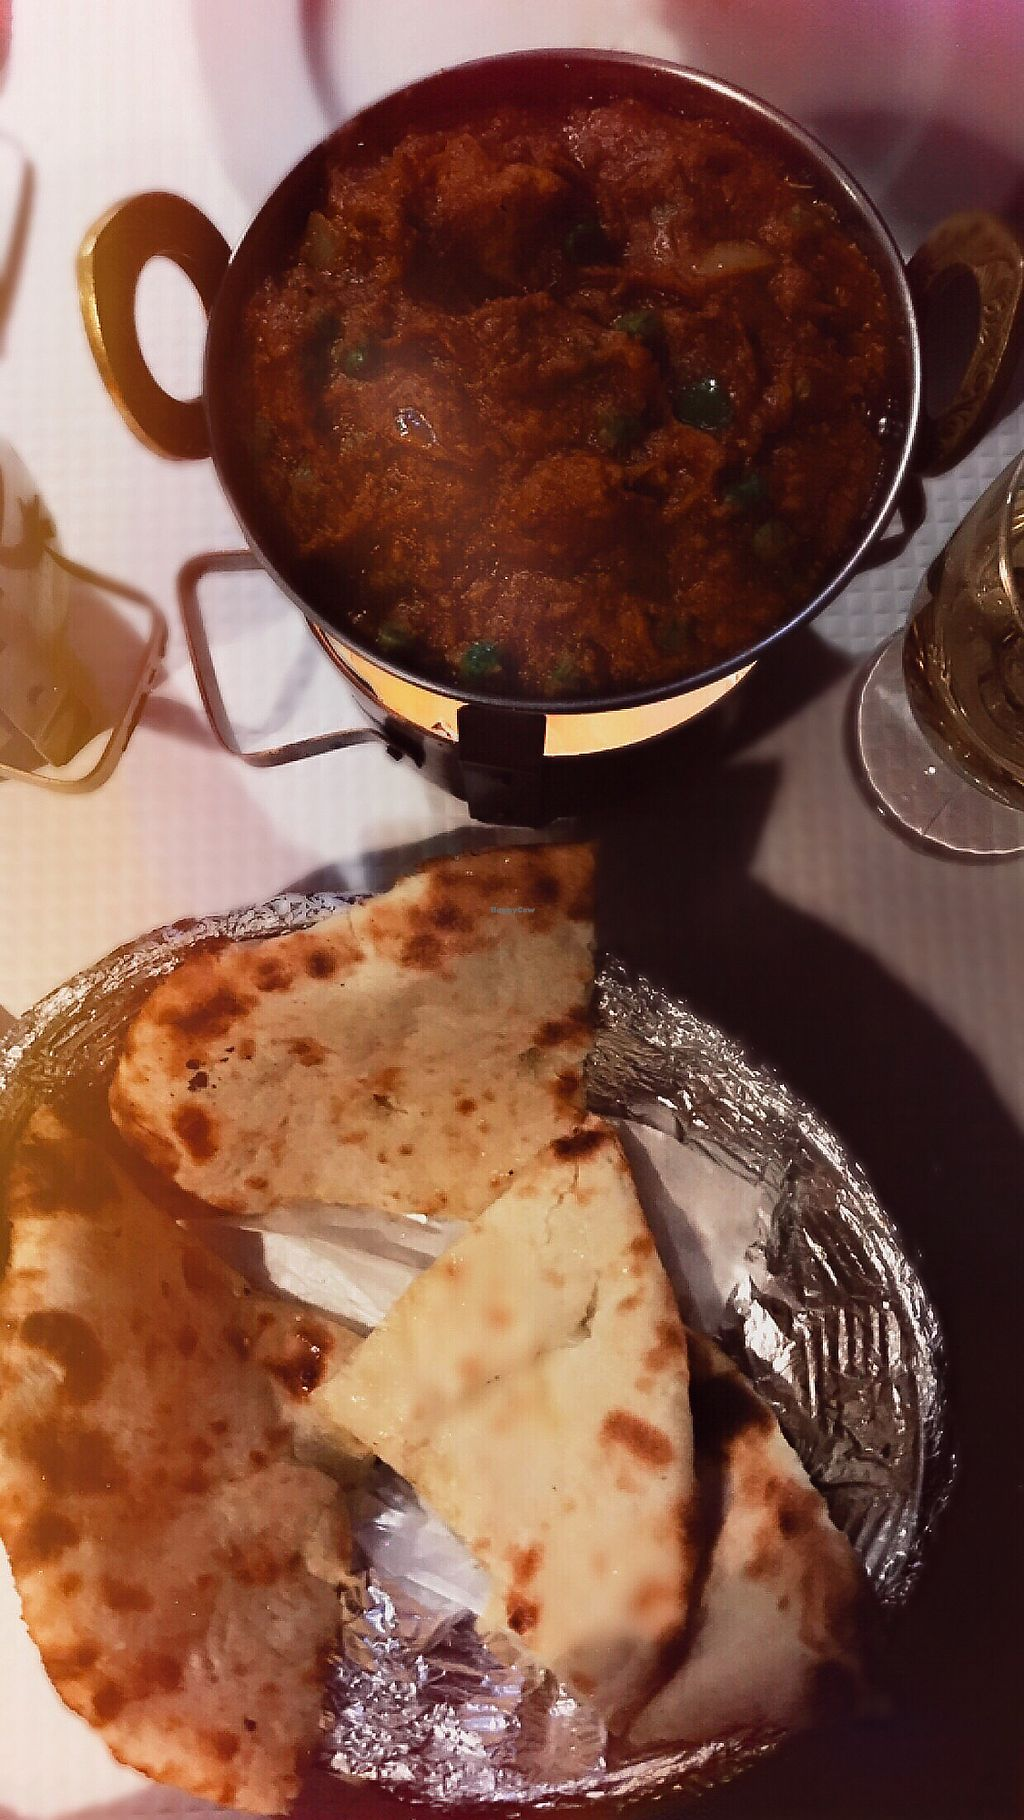 """Photo of Sanskar Nepal  by <a href=""""/members/profile/norbachs"""">norbachs</a> <br/>Vegan """"Chicken"""" Curry and Vegan """"cheese"""" naan  <br/> December 24, 2017  - <a href='/contact/abuse/image/95207/338867'>Report</a>"""